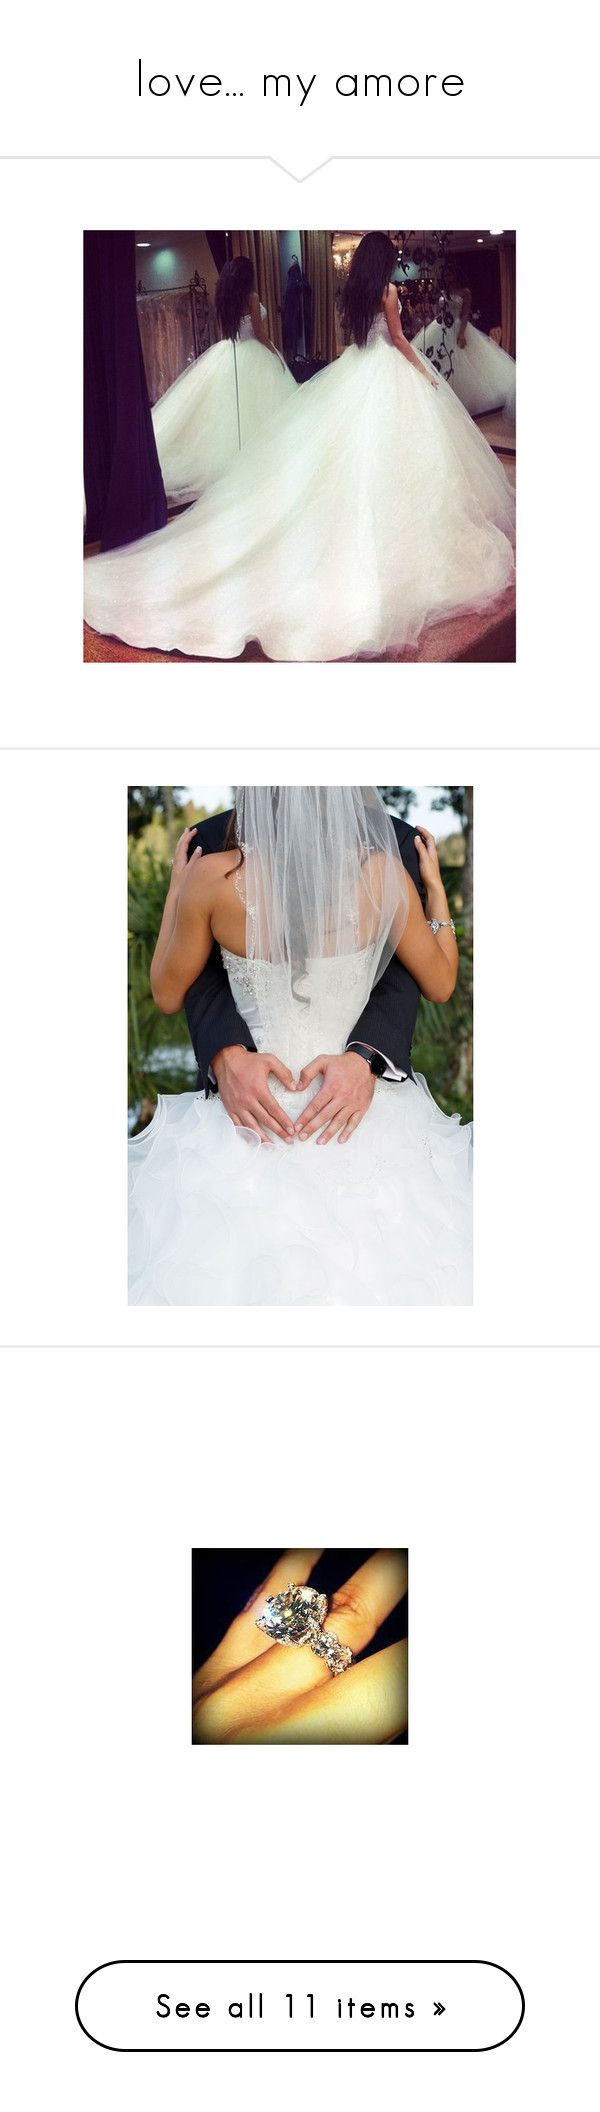 """""""love... my amore"""" by ashleybanks-711 ❤ liked on Polyvore featuring wedding, instagram, dresses, pictures, wedding dresses, couples, wedding stuff, jewelry, rings and wedding jewellery"""